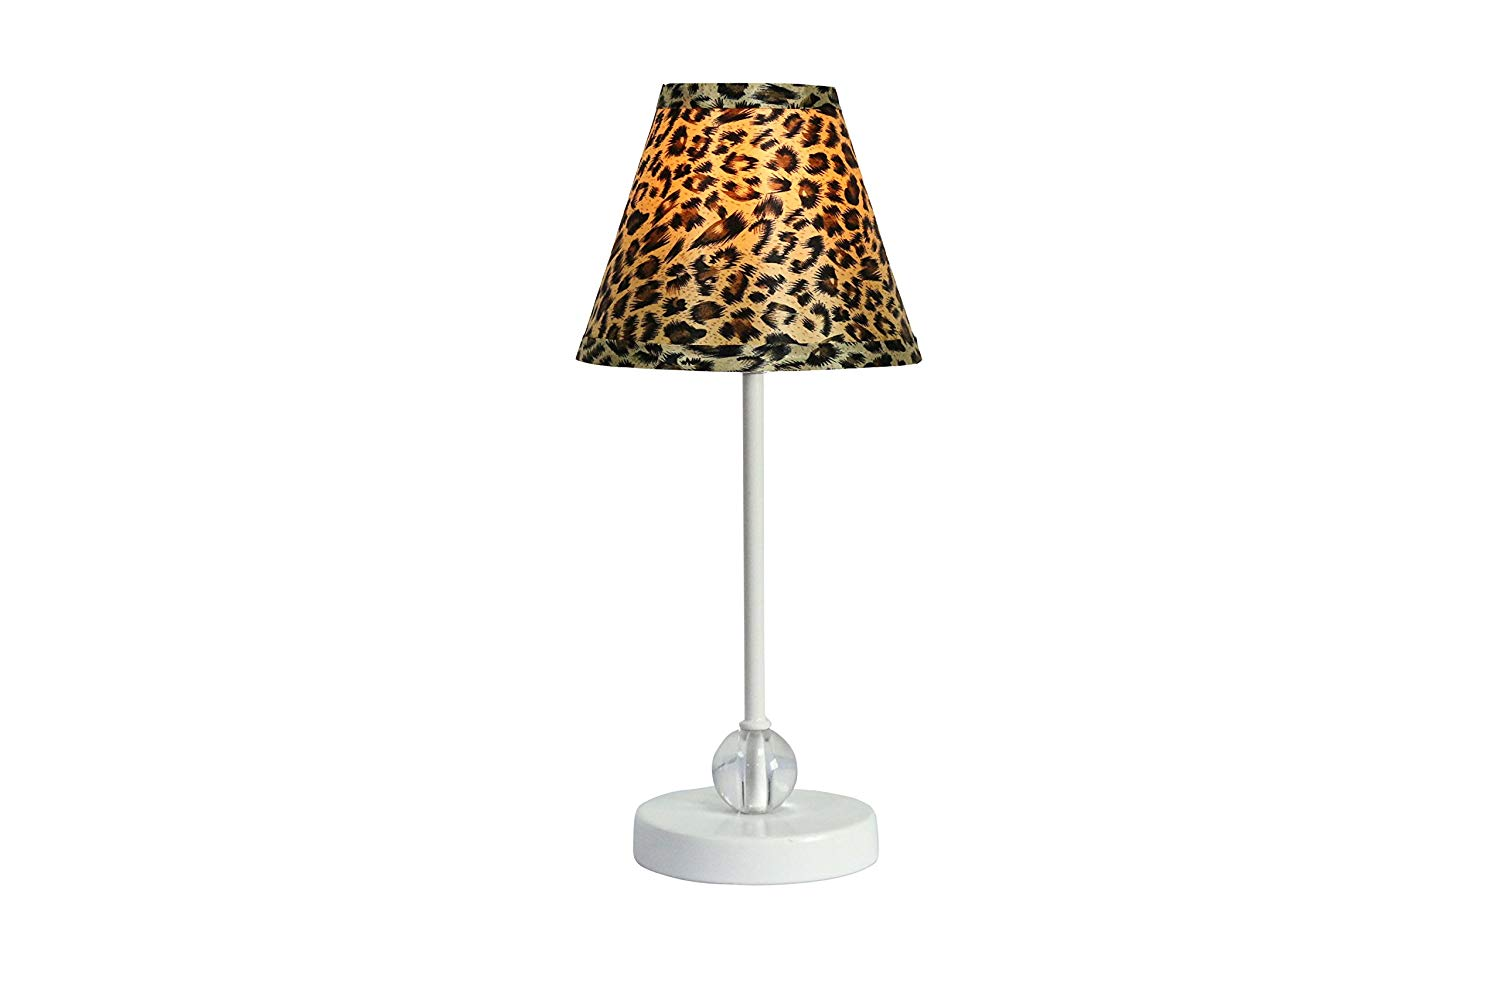 Chelsea Mini Accent Lamp with Leopard Lamp Shade